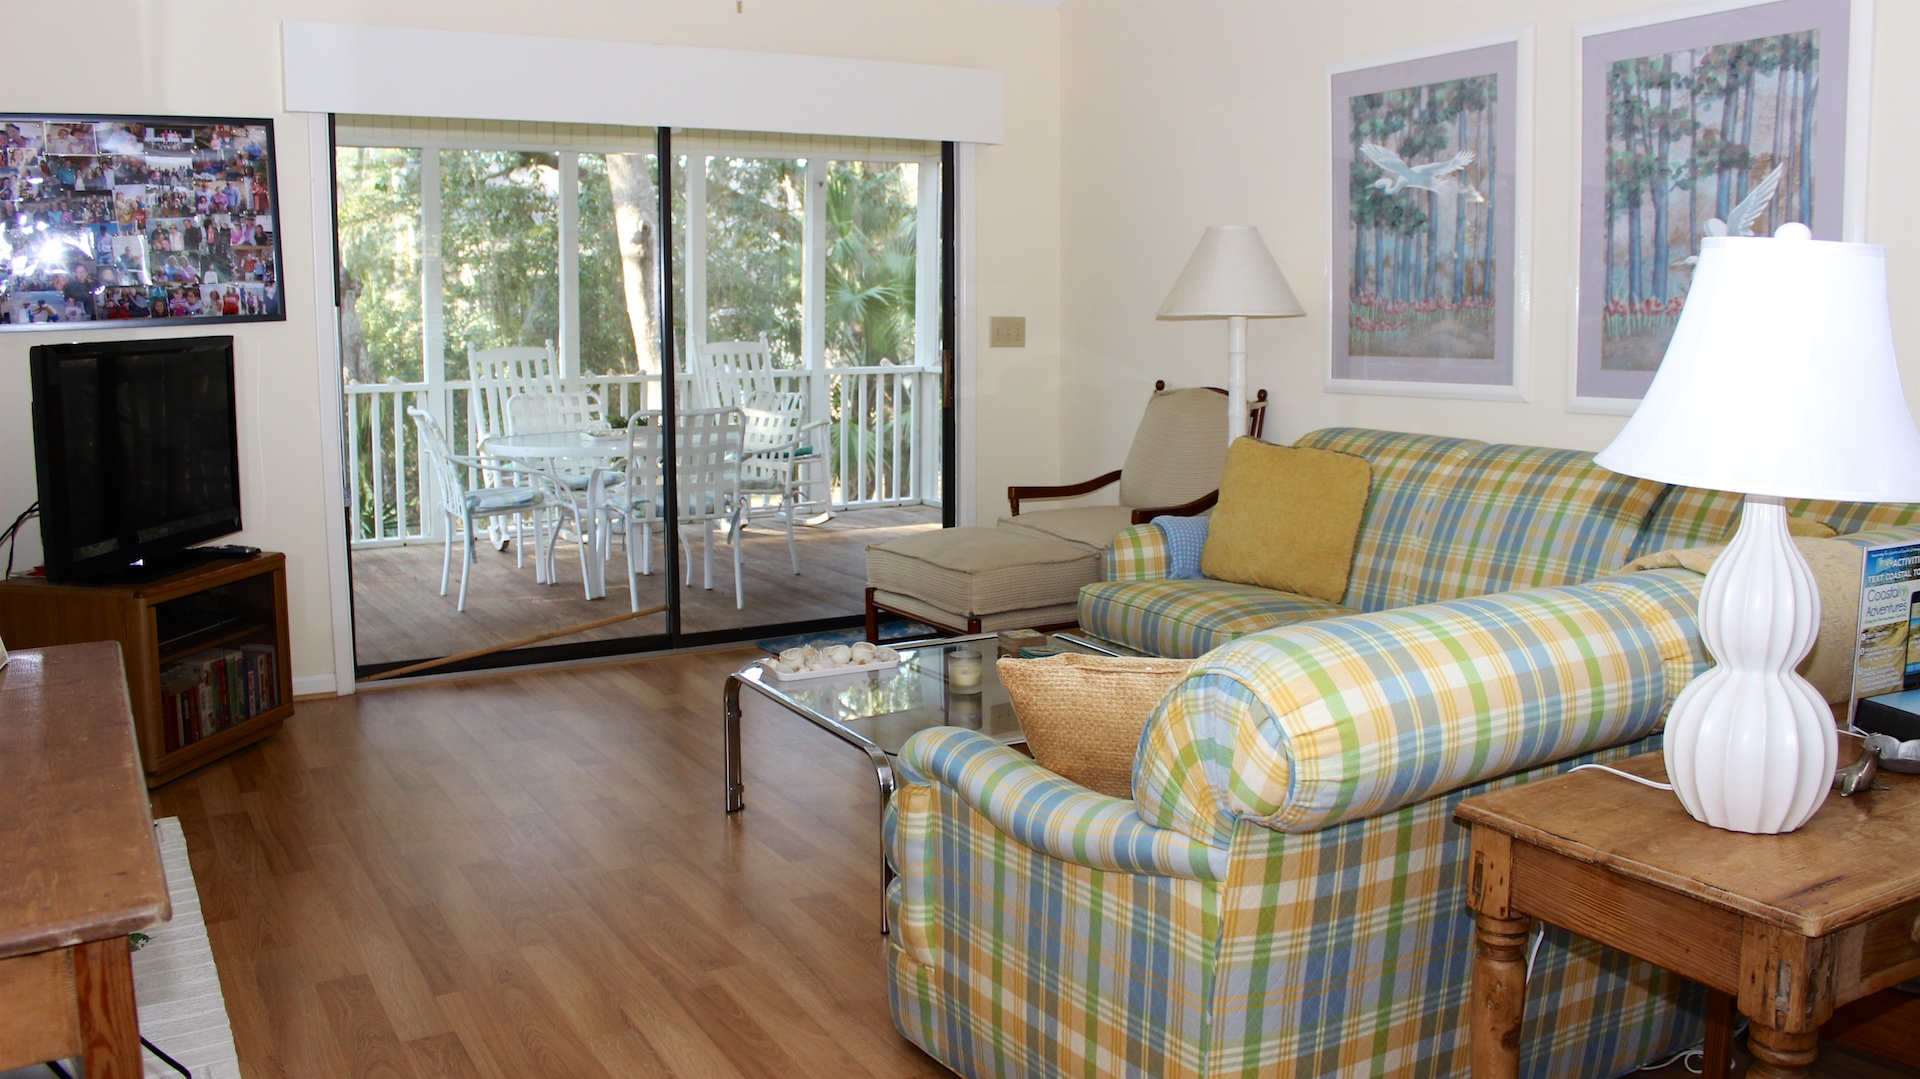 The sliding doors to the screened porch allow sunlight to filter through the trees.